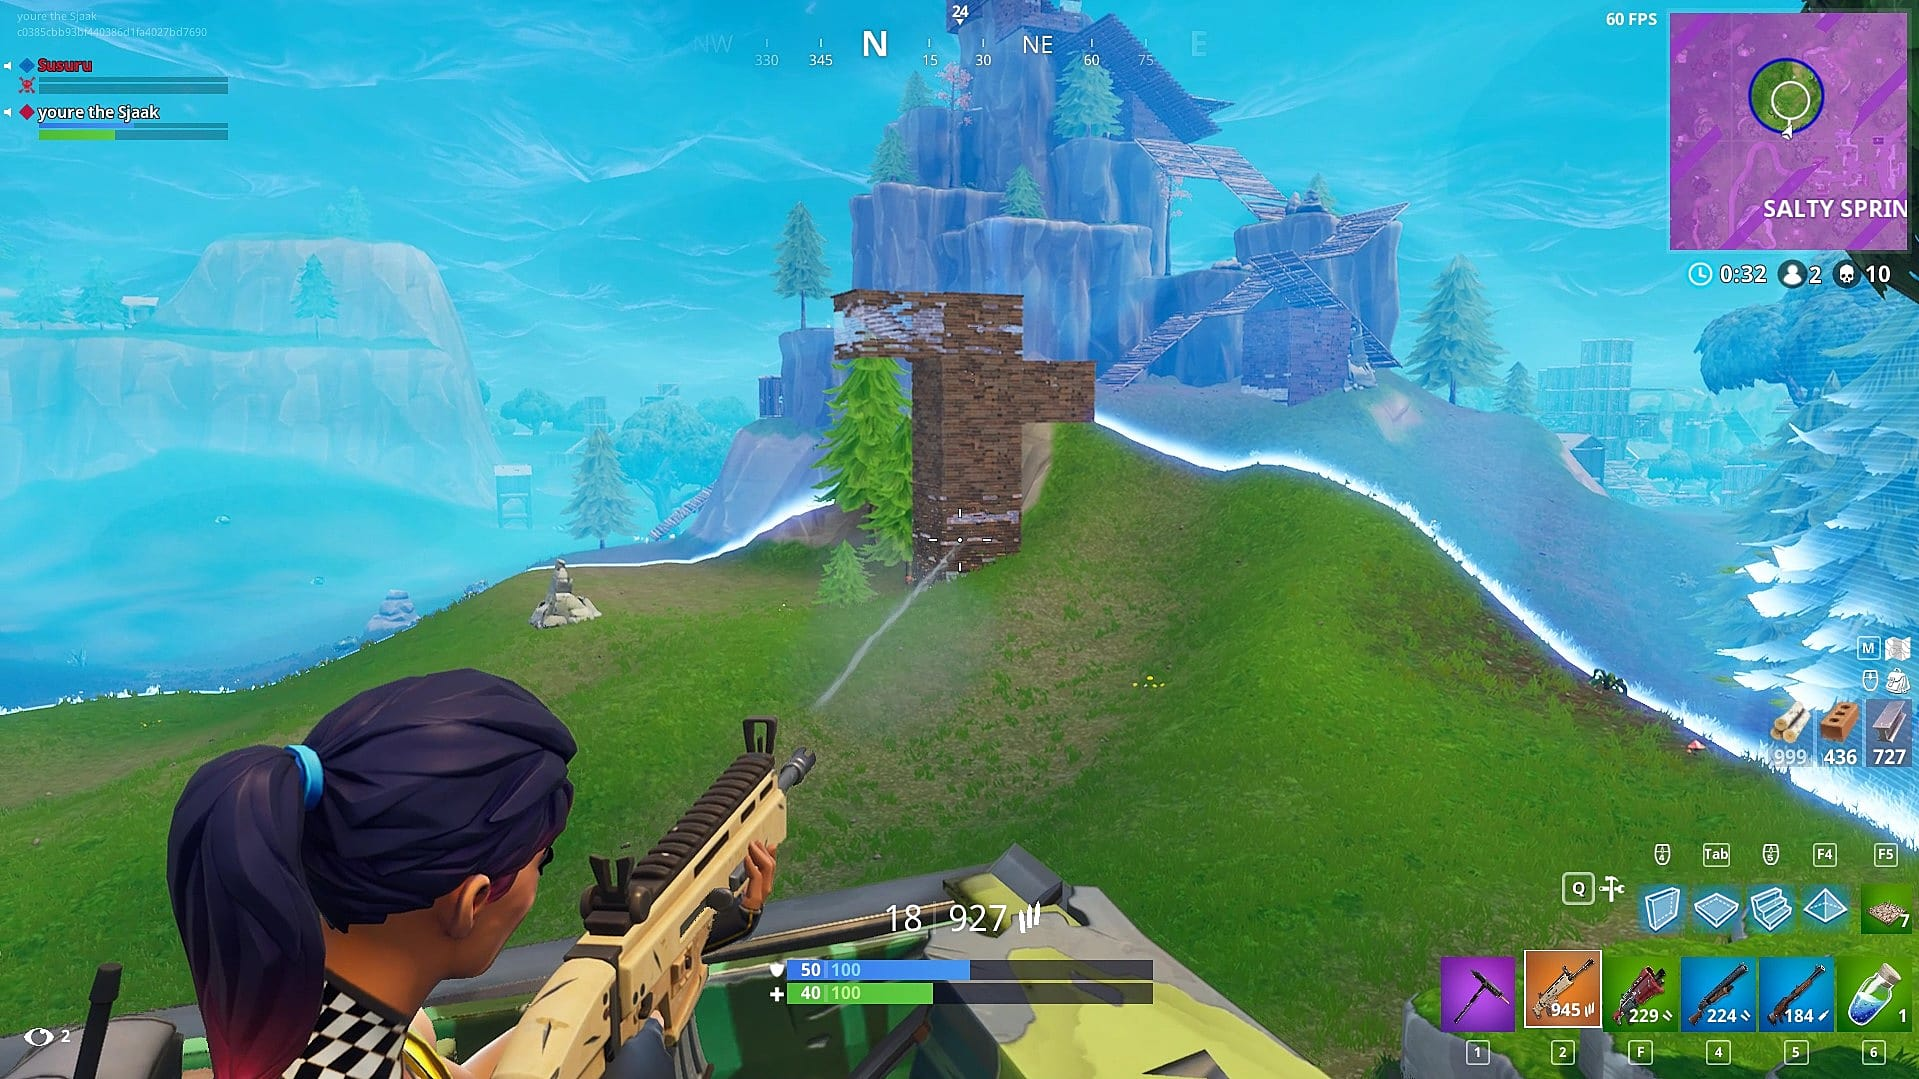 the scar is definitely the superior weapon when it comes to destroying structures its higher fire rate and equivalent structure damage make it way more - fortnite damage headshot